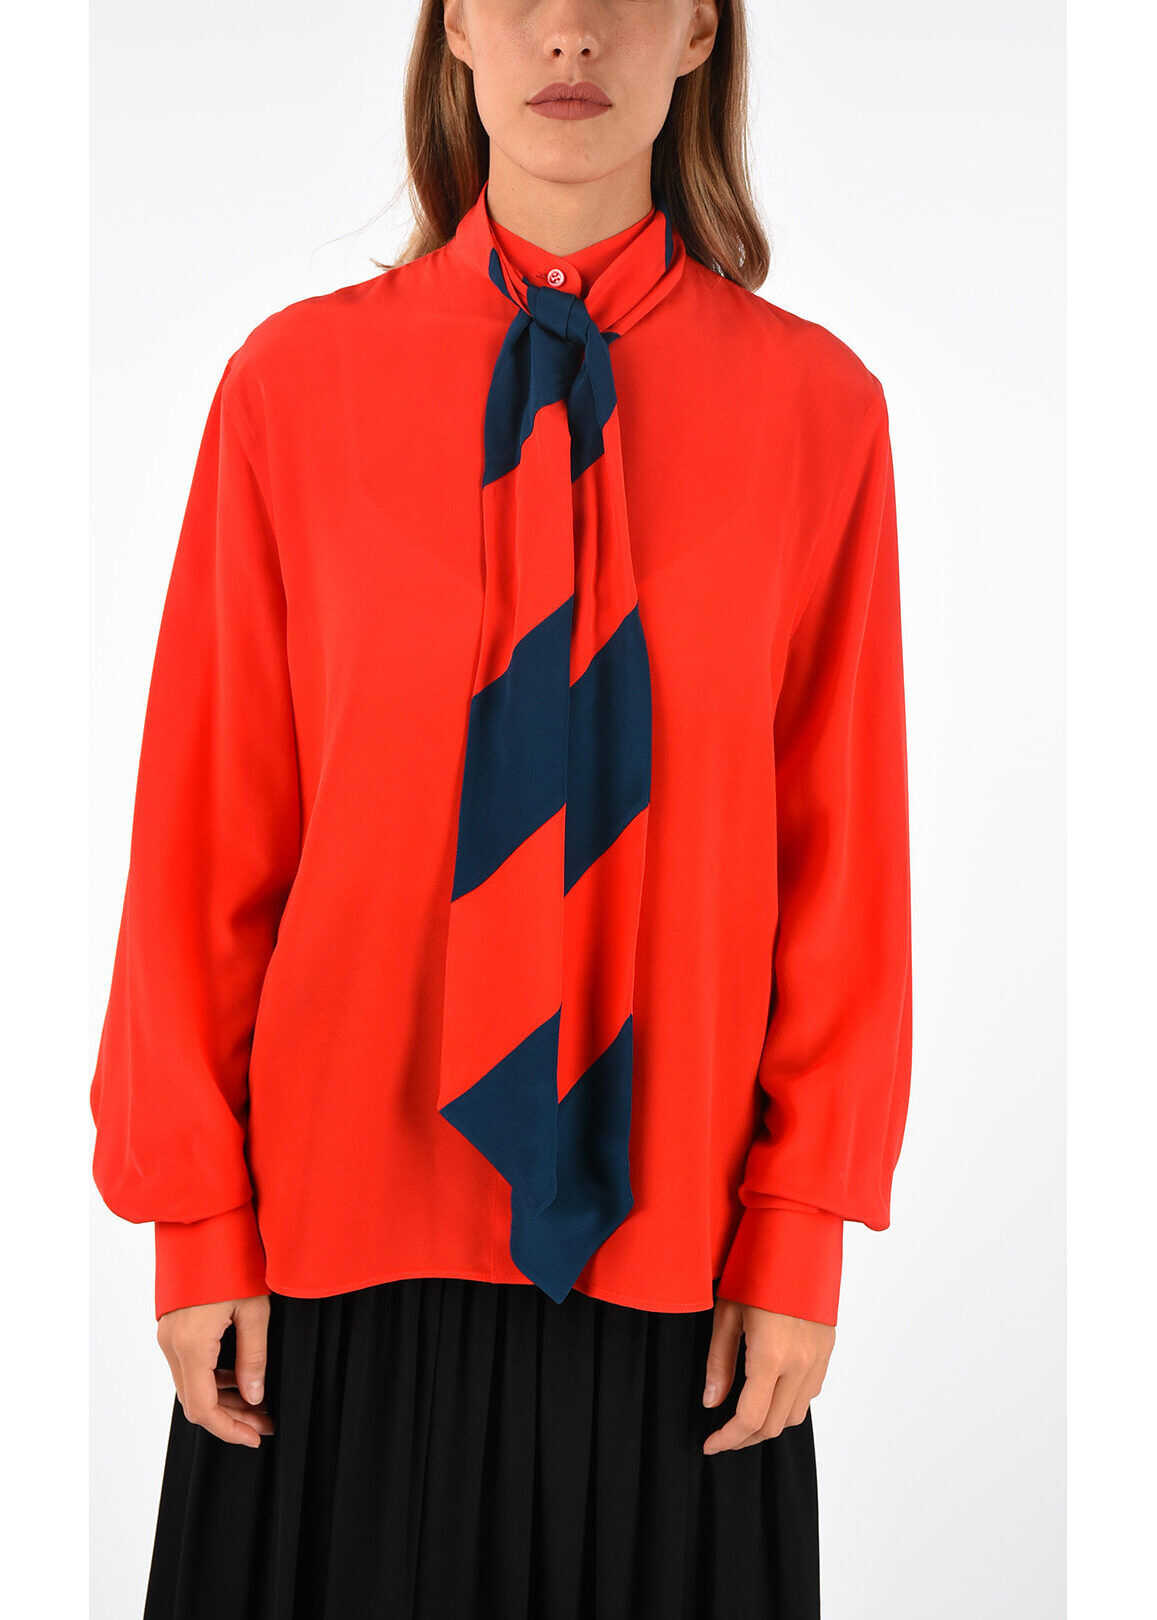 Givenchy Silk blouse RED